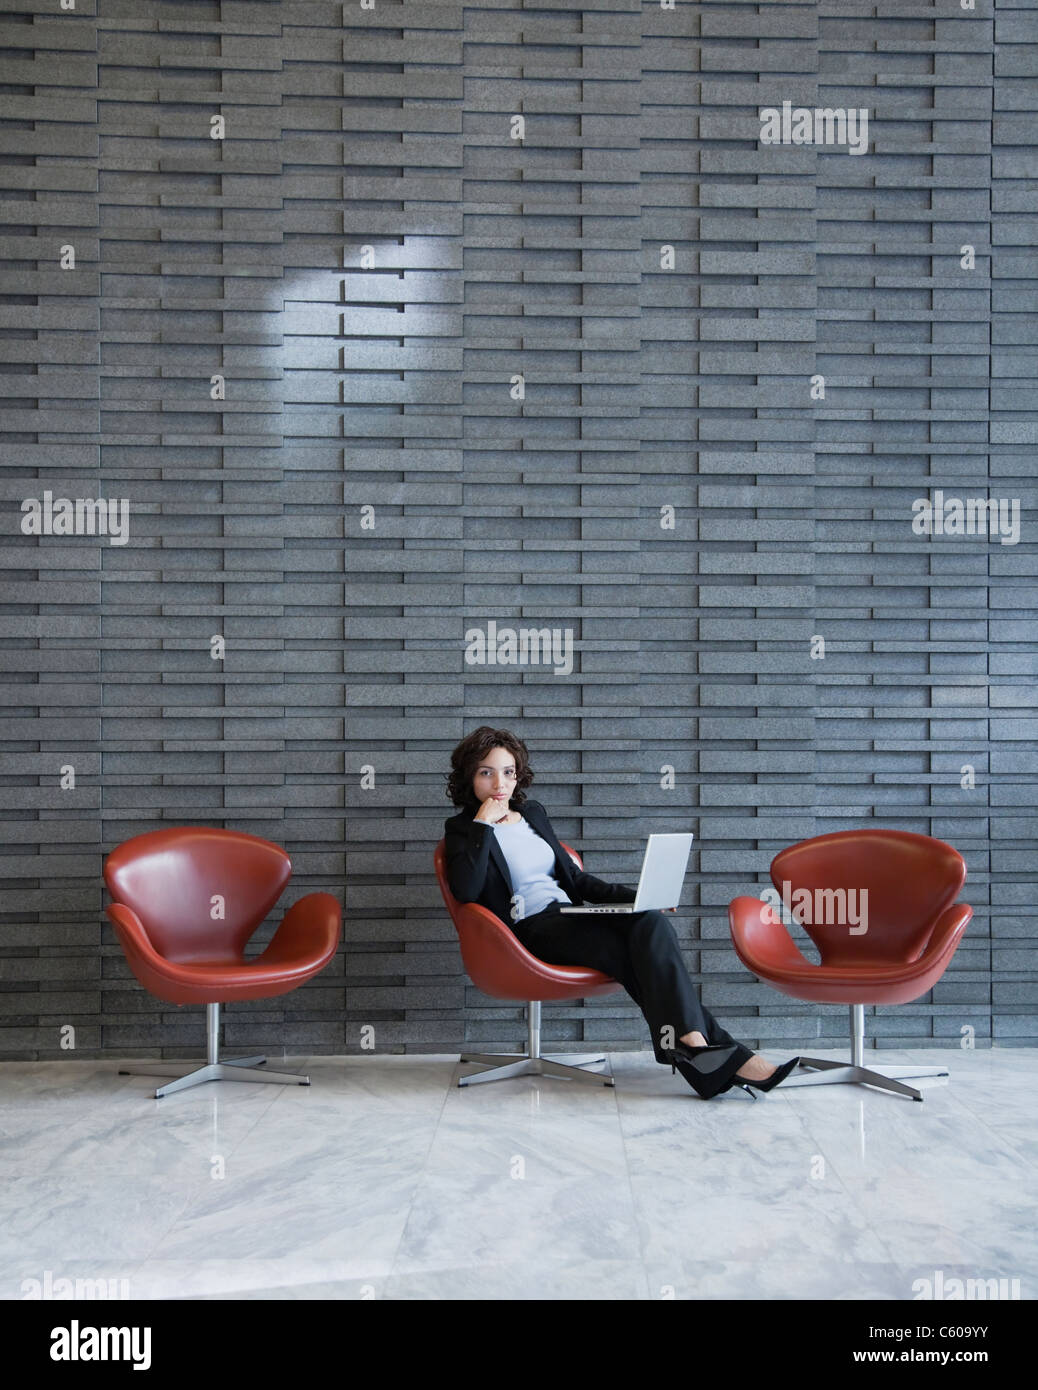 USA, New York, New York City, portrait of smiling young woman using laptop in hotel lobby - Stock Image